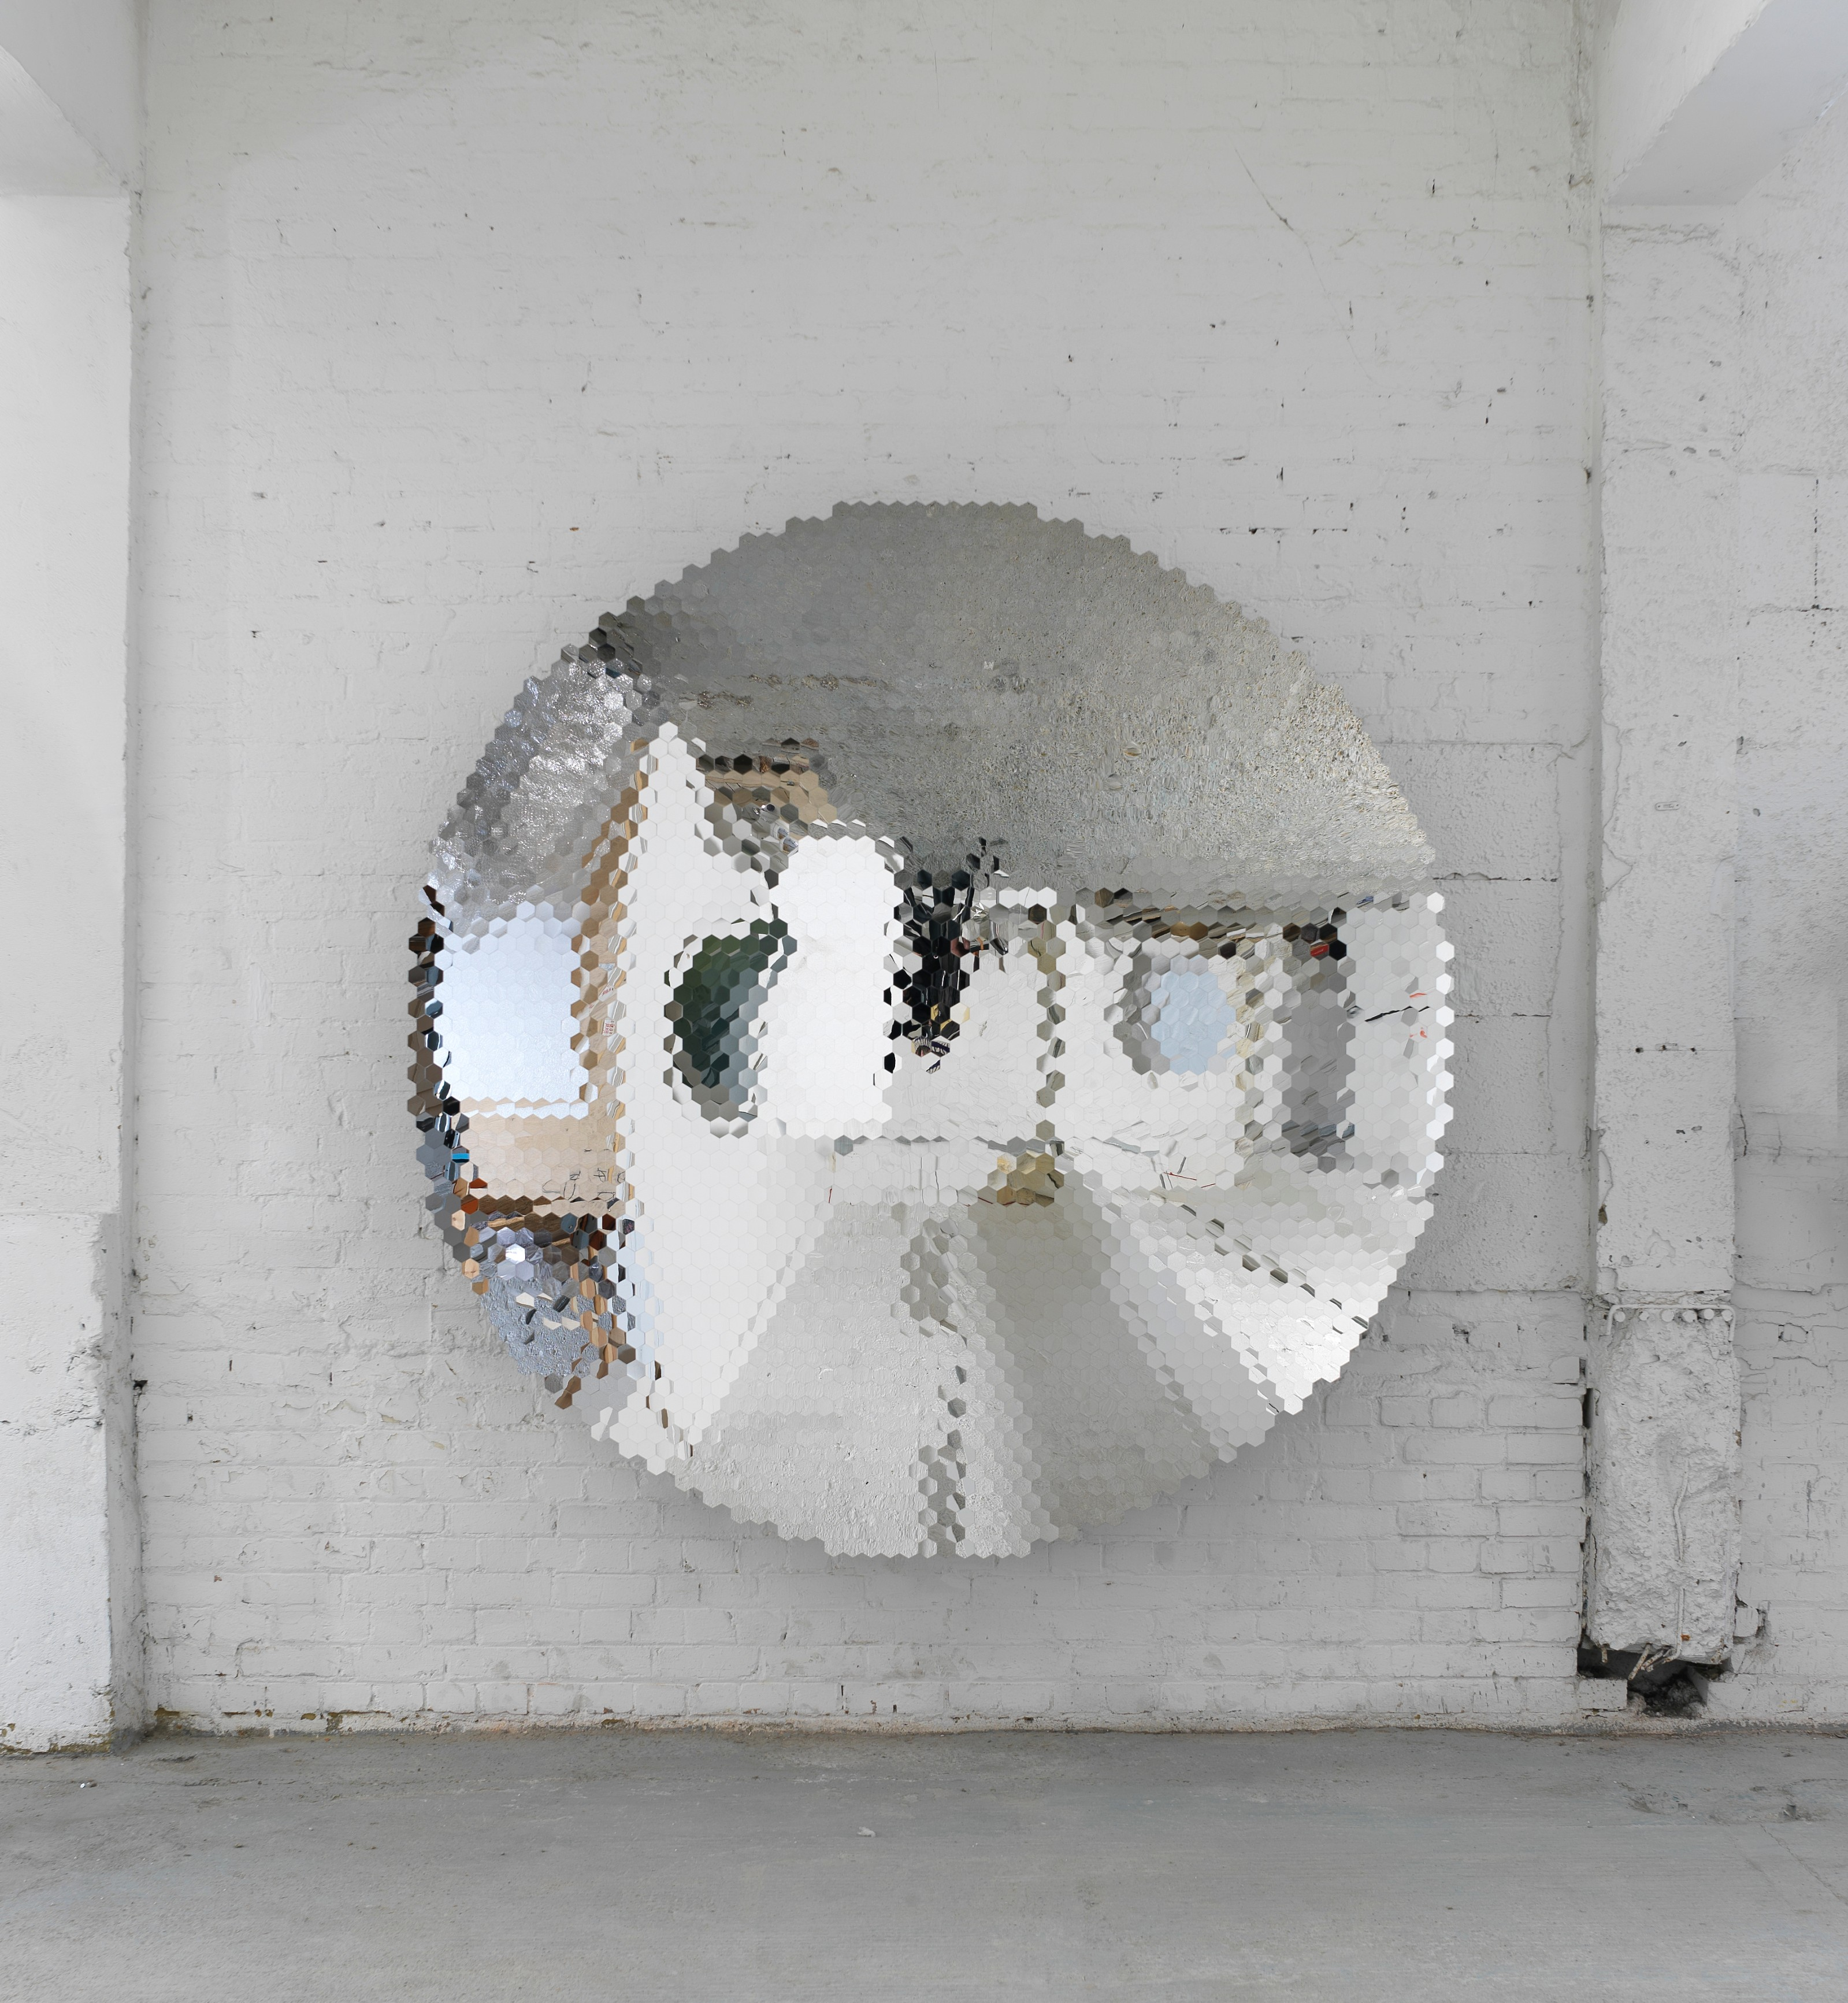 Best Galleries to Explore at Art Basel Miami 2018 Galleria Continua - Anish Kapoor galleria continua Best Galleries to Explore at Art Basel Miami 2018: Galleria Continua Best Galleries to Explore at Art Basel Miami 2018 Anish Kapoor